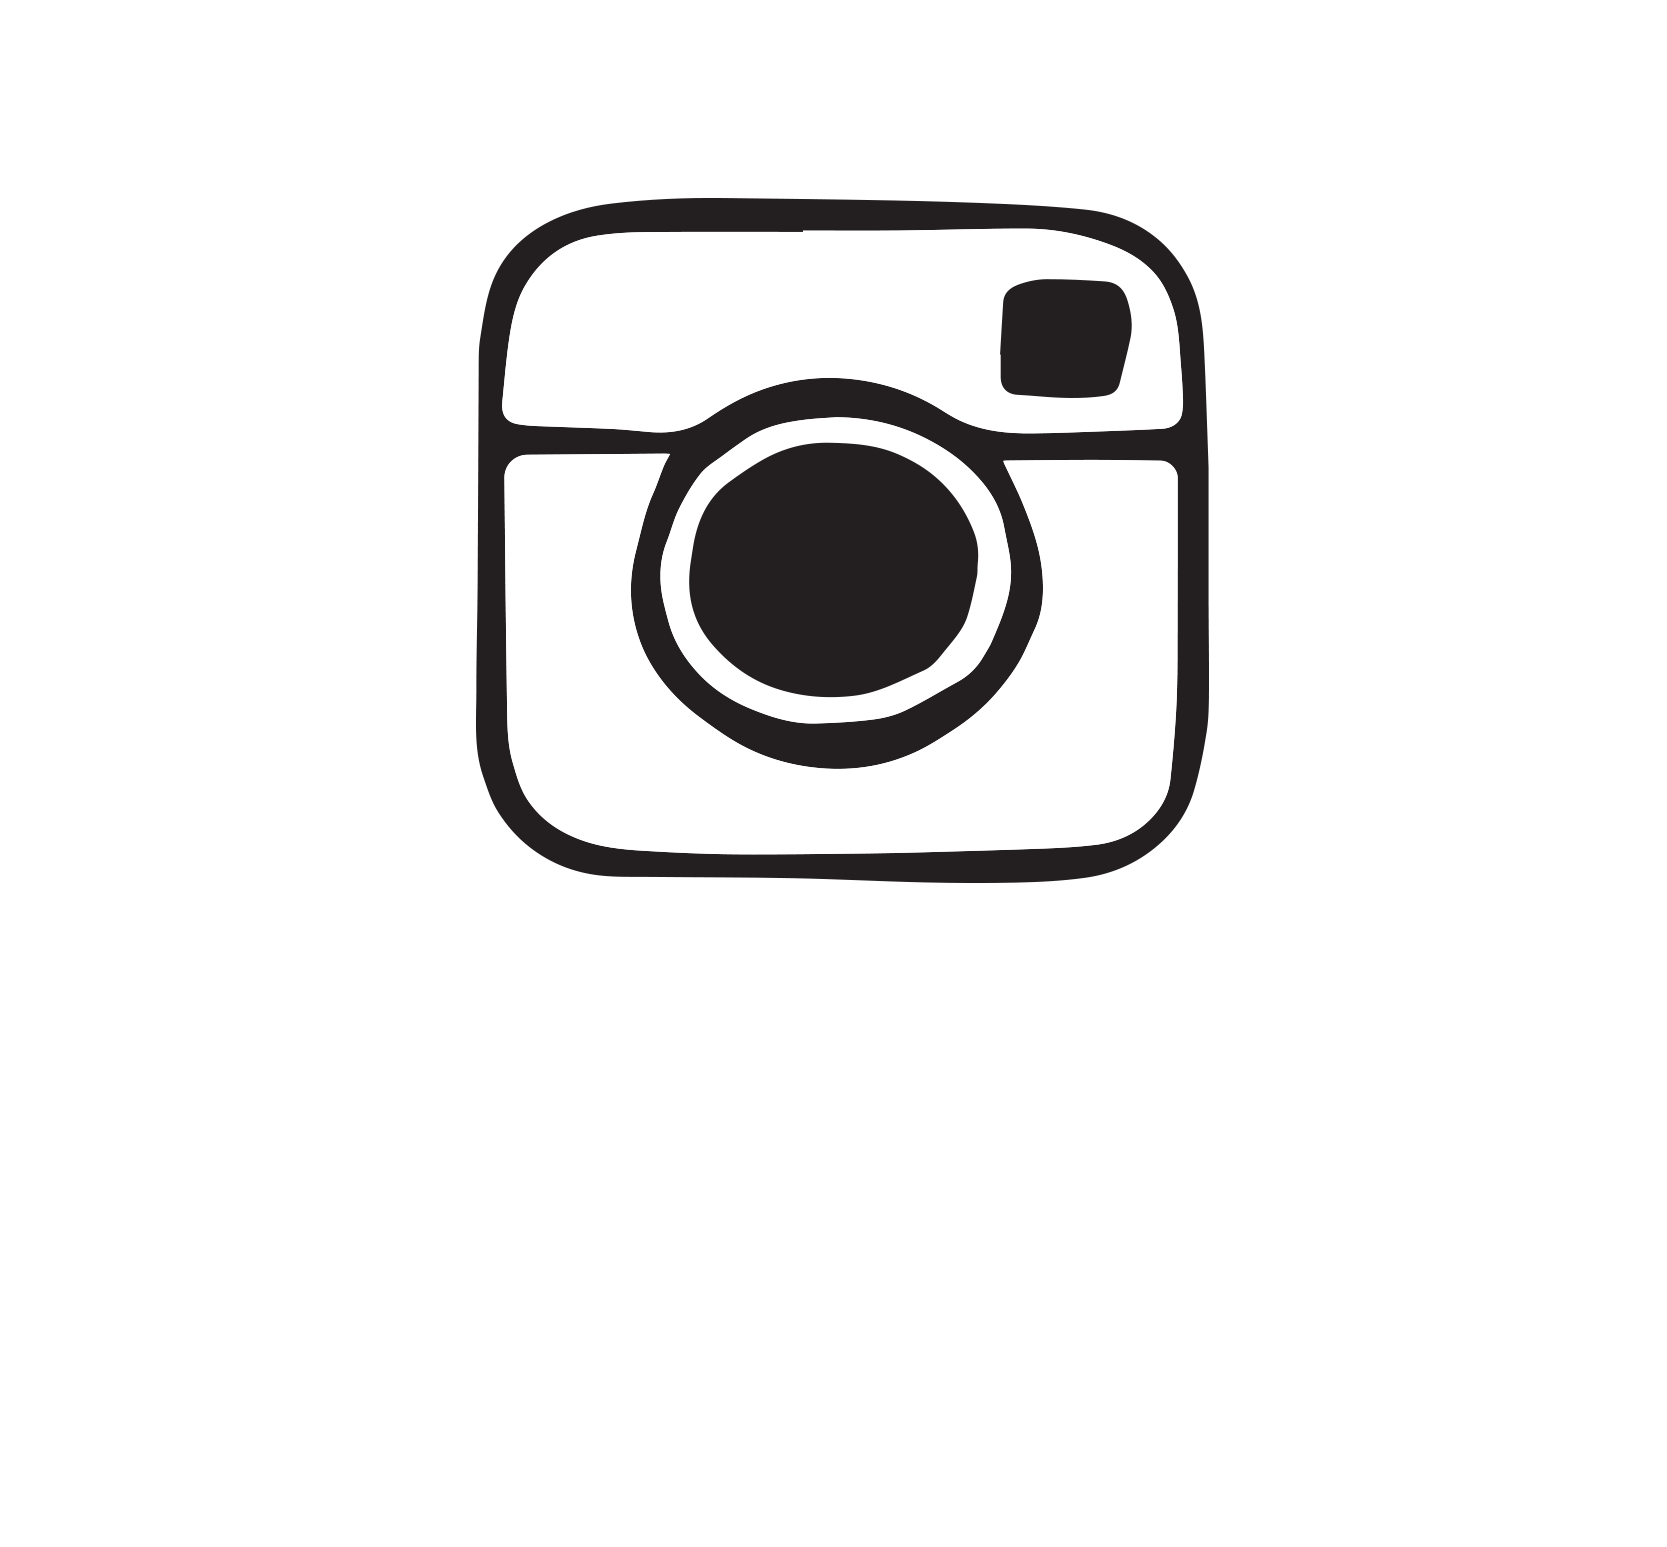 Social verified coffee